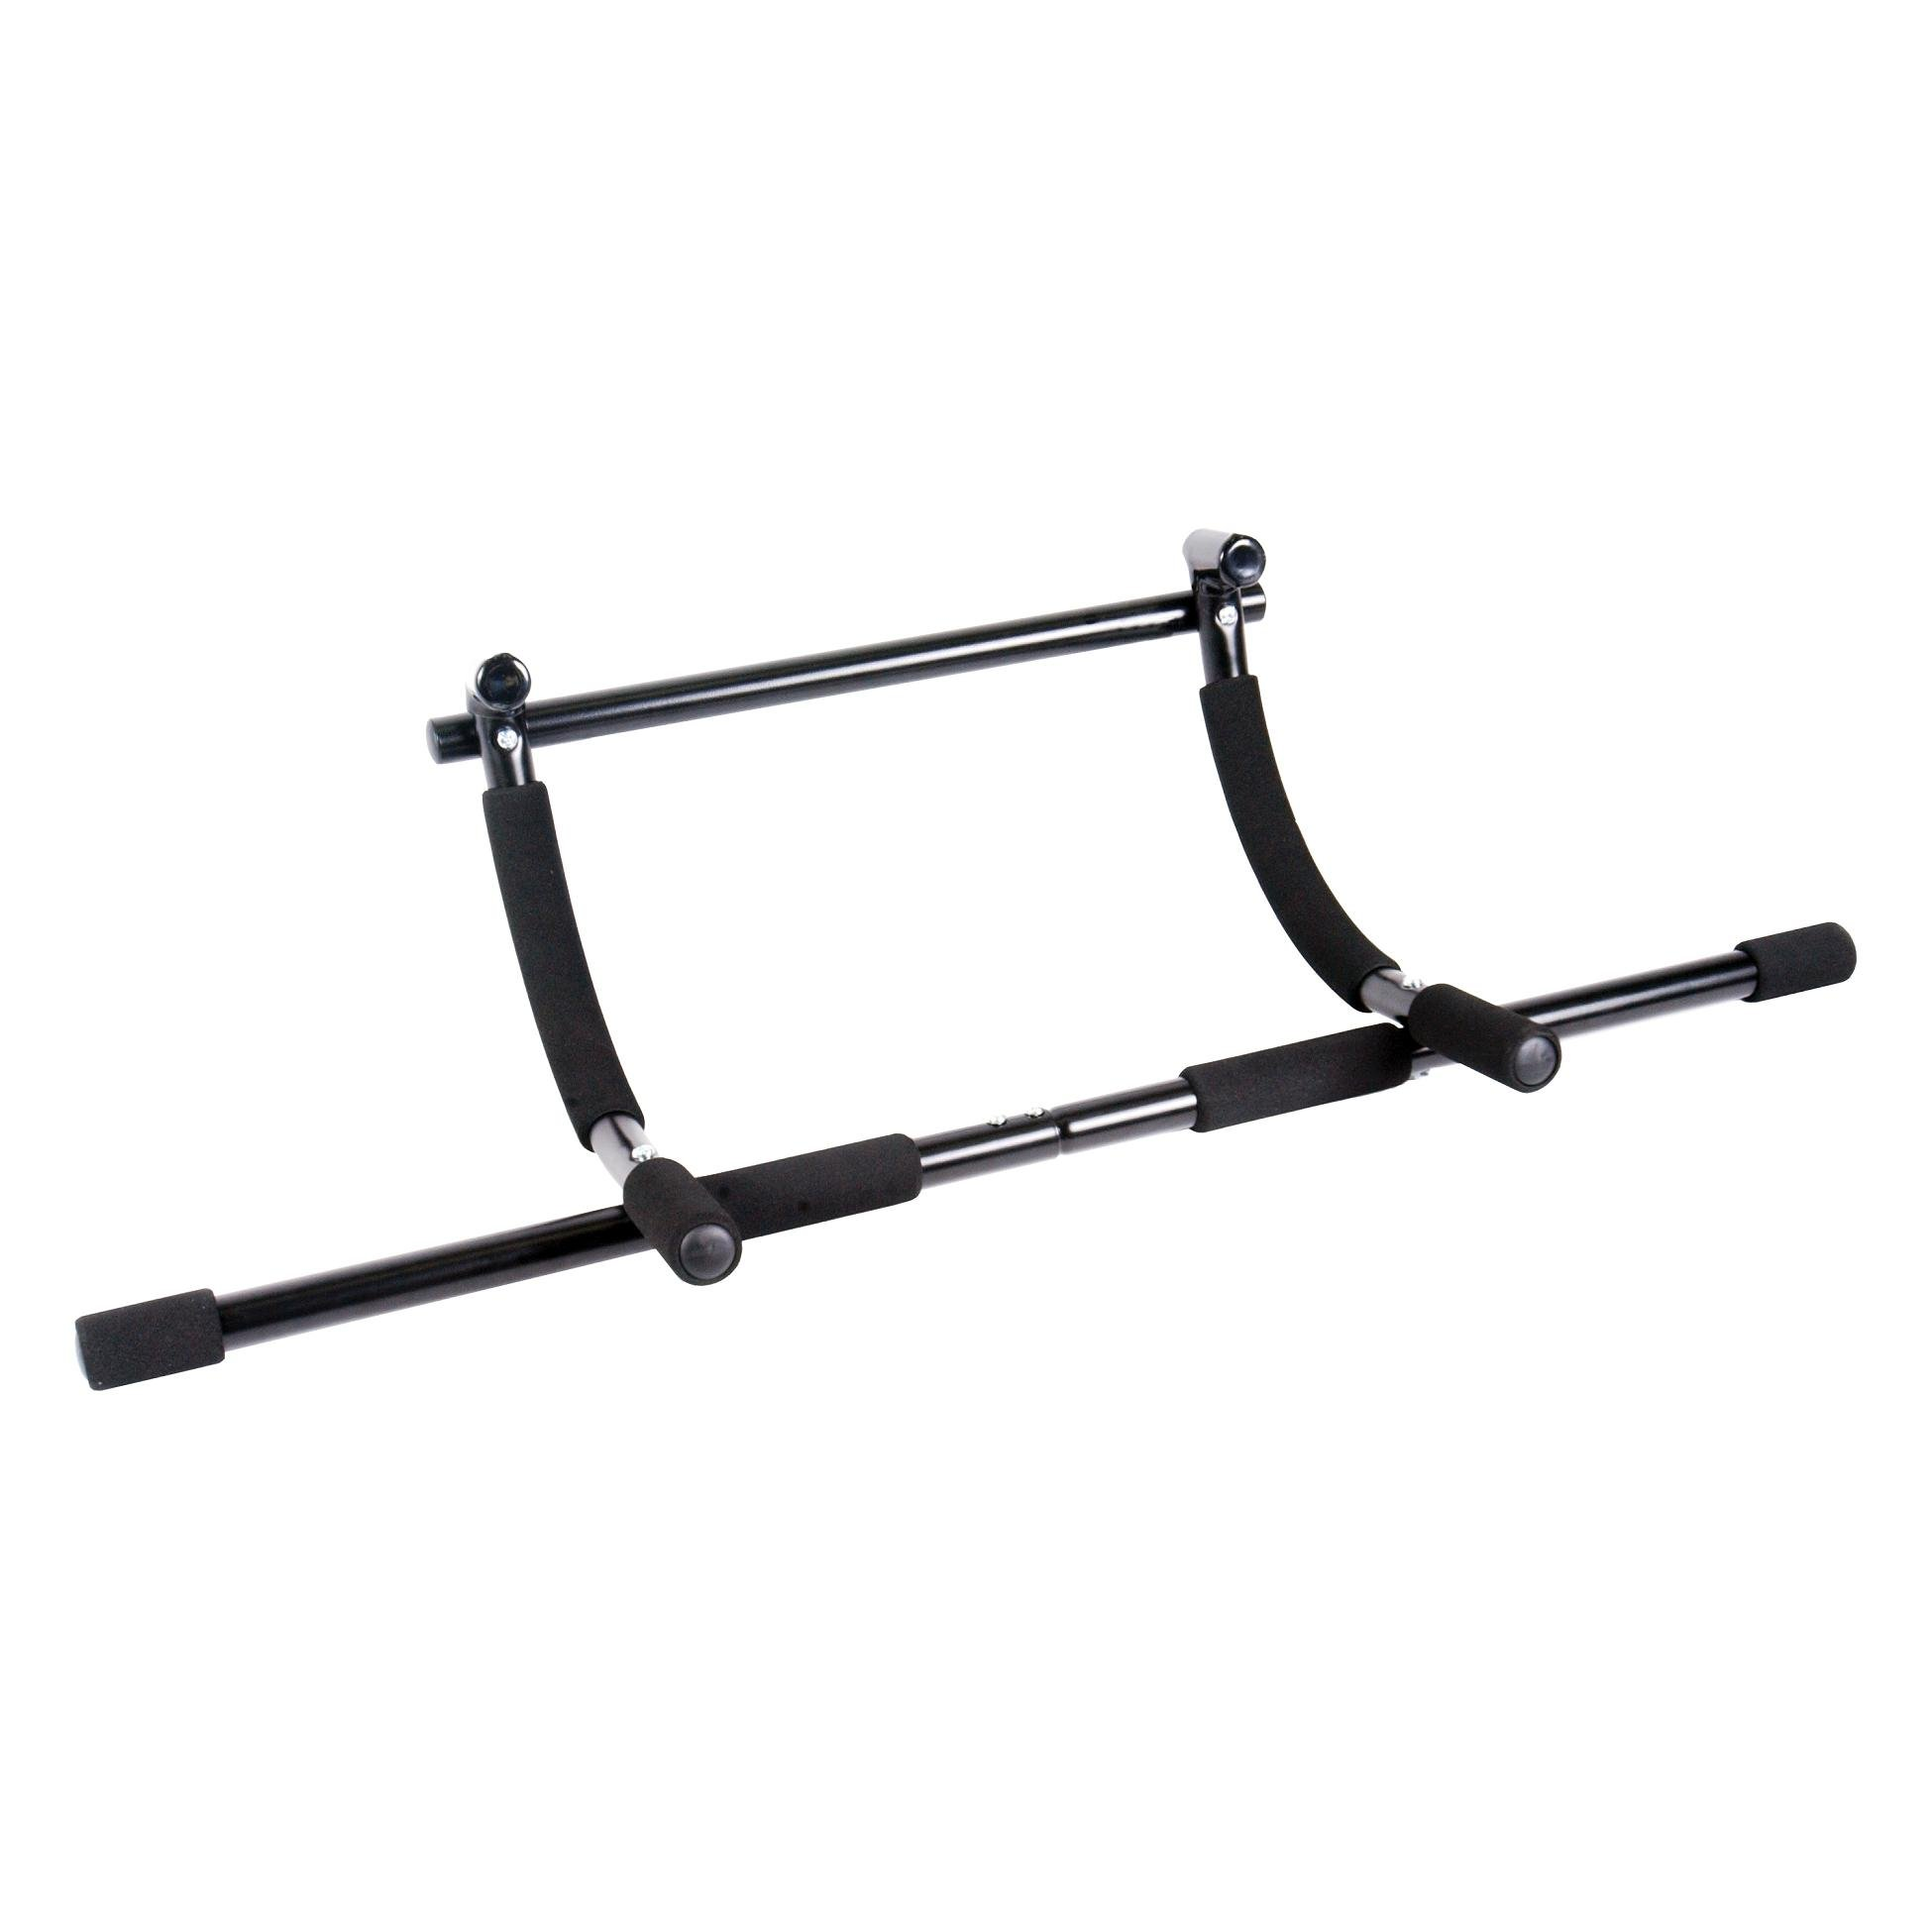 CAP Barbell Doorway Upper Body Workout Bar